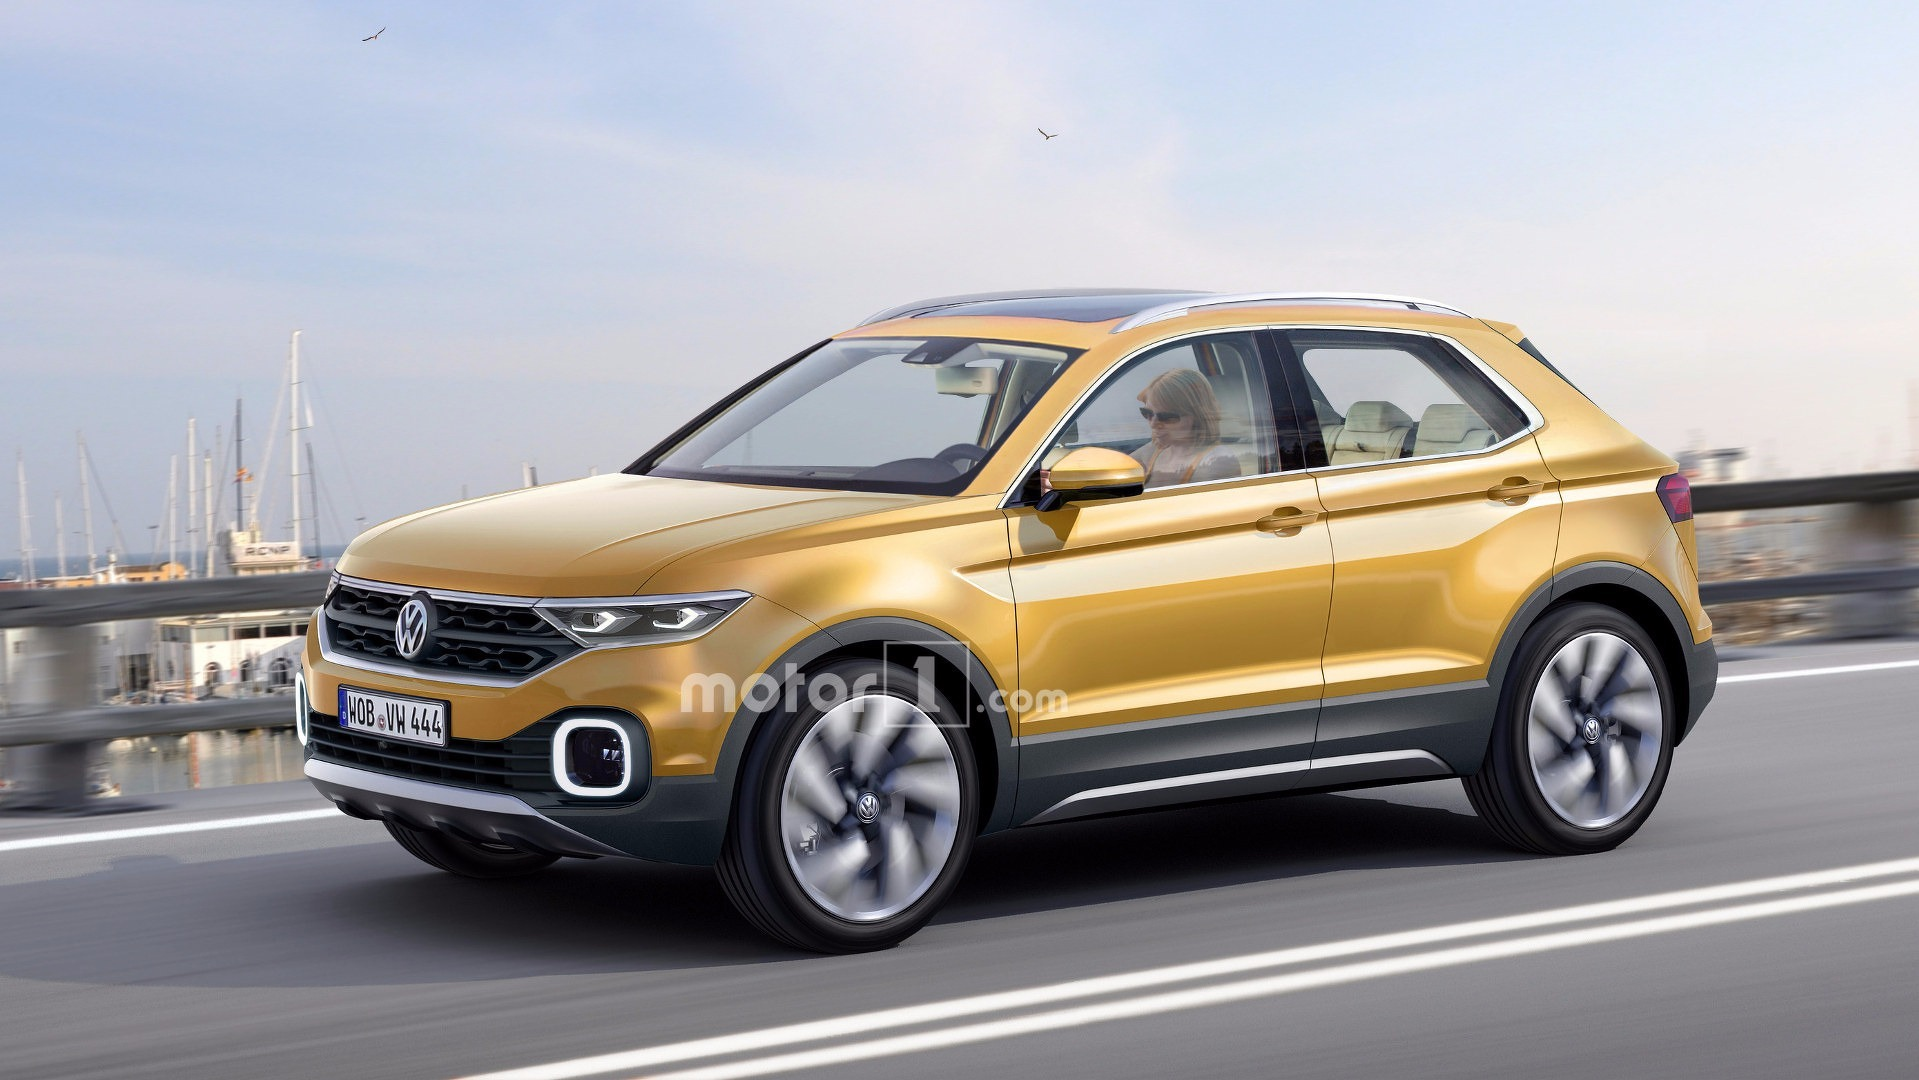 Vw Suv Polo >> Upcoming Vw Polo Suv Rendered And Caught On Video